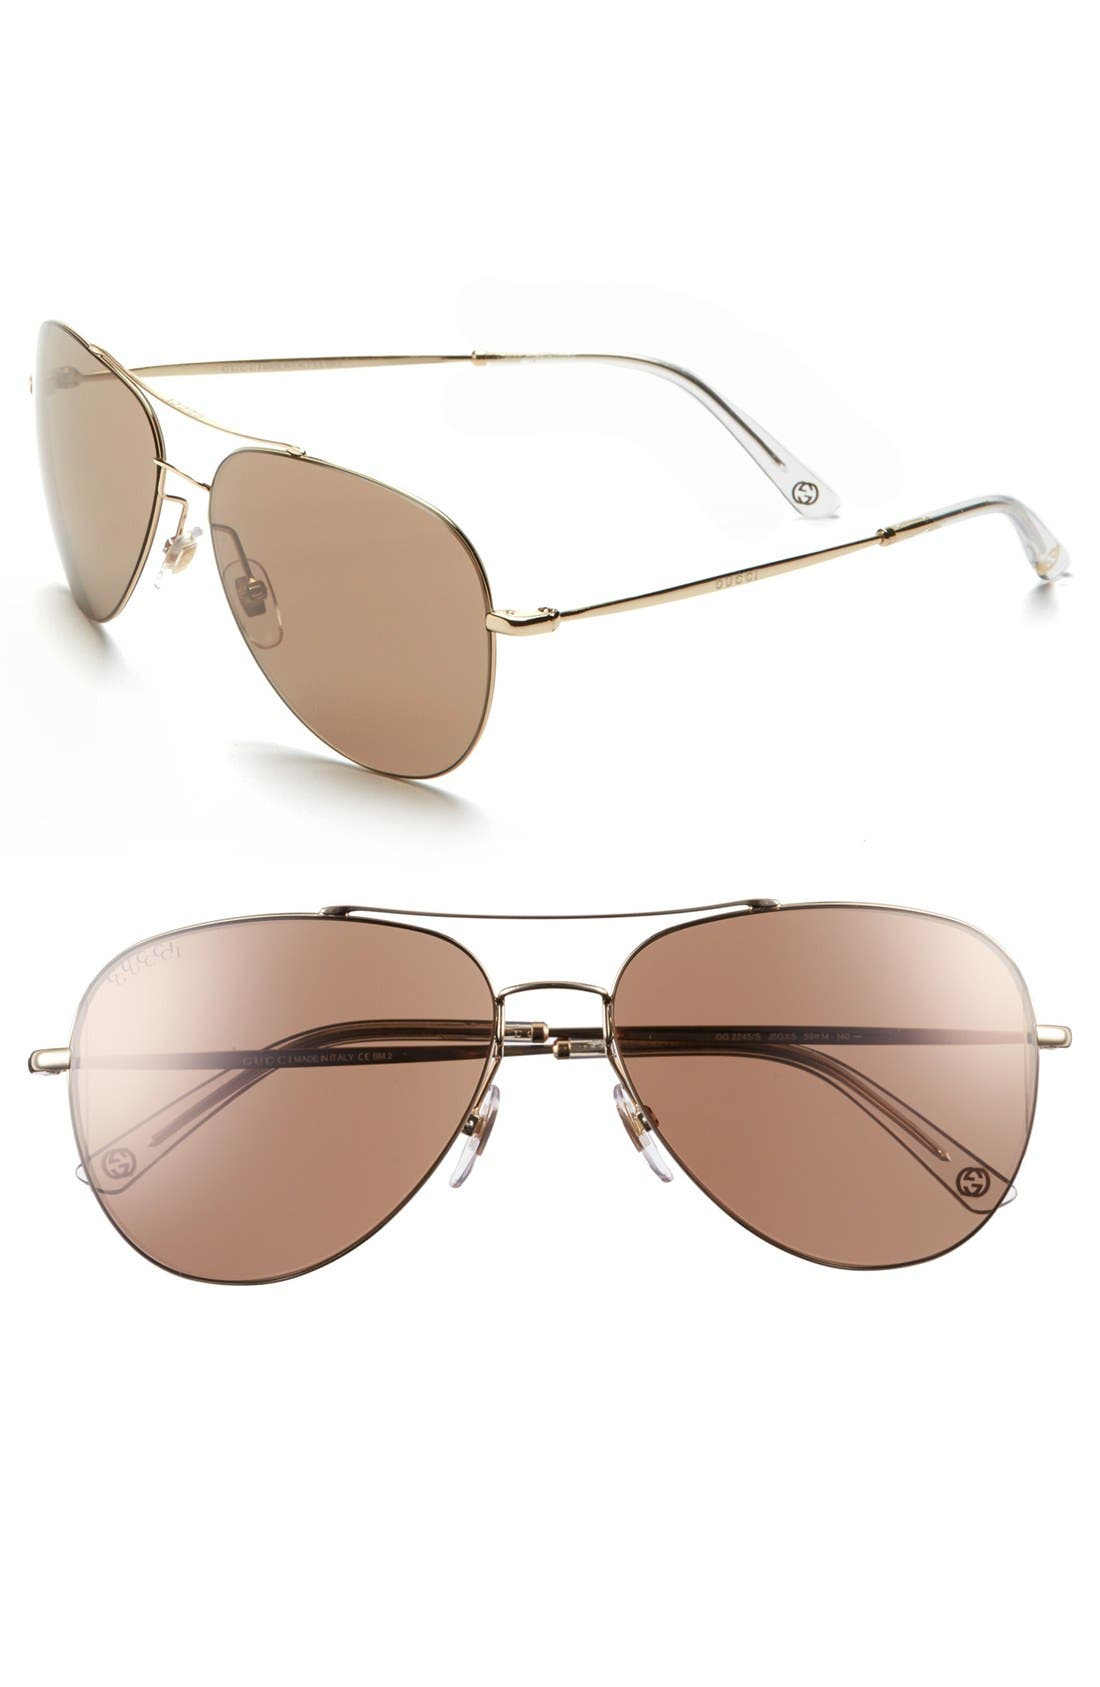 Alternate Image 1 Selected - Gucci 59mm Aviator Sunglasses